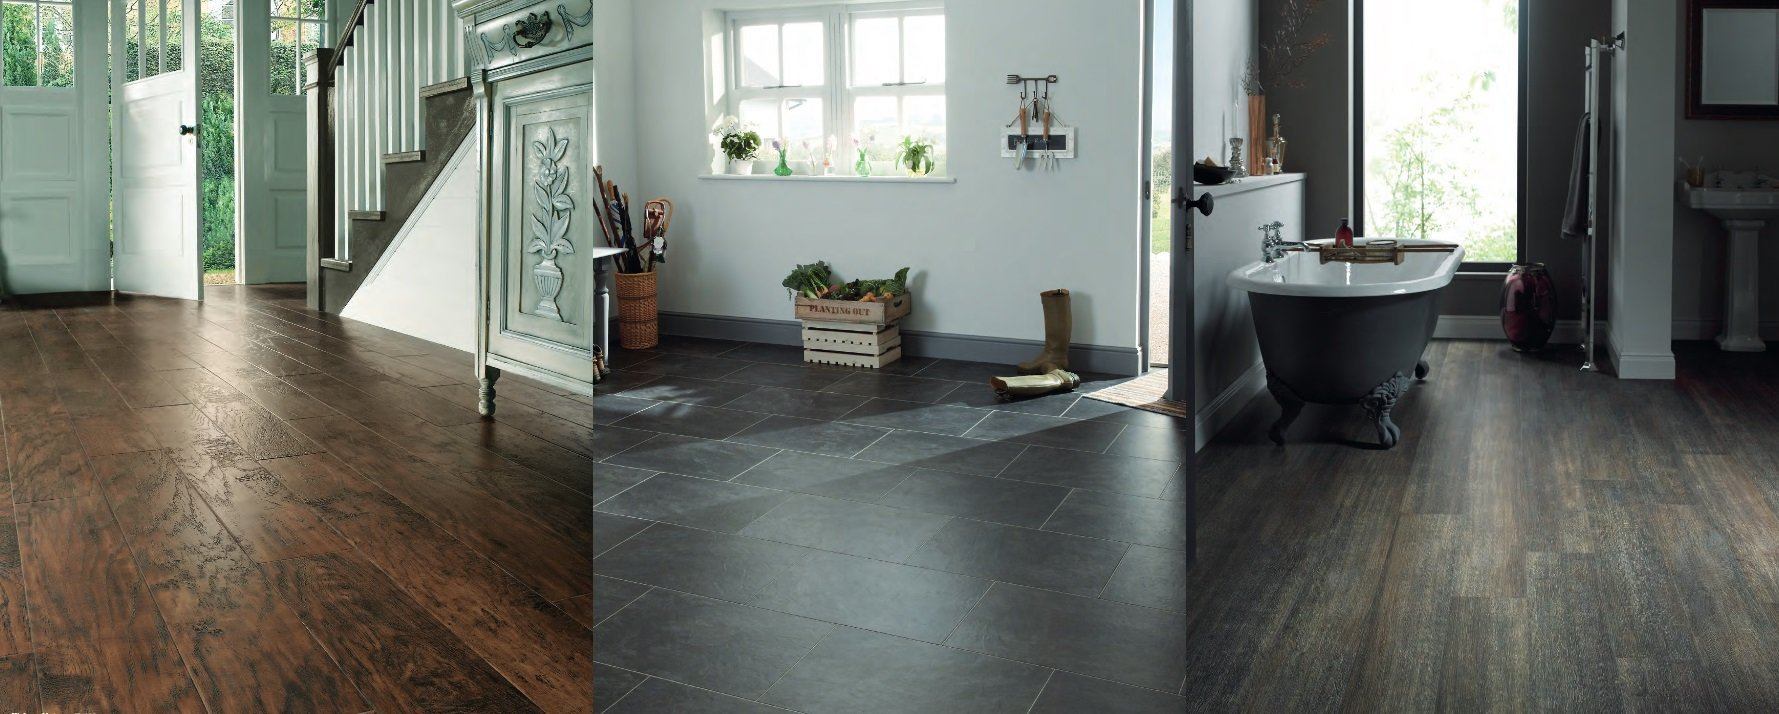 Living room flooring and bathroom flooring by Holme Design